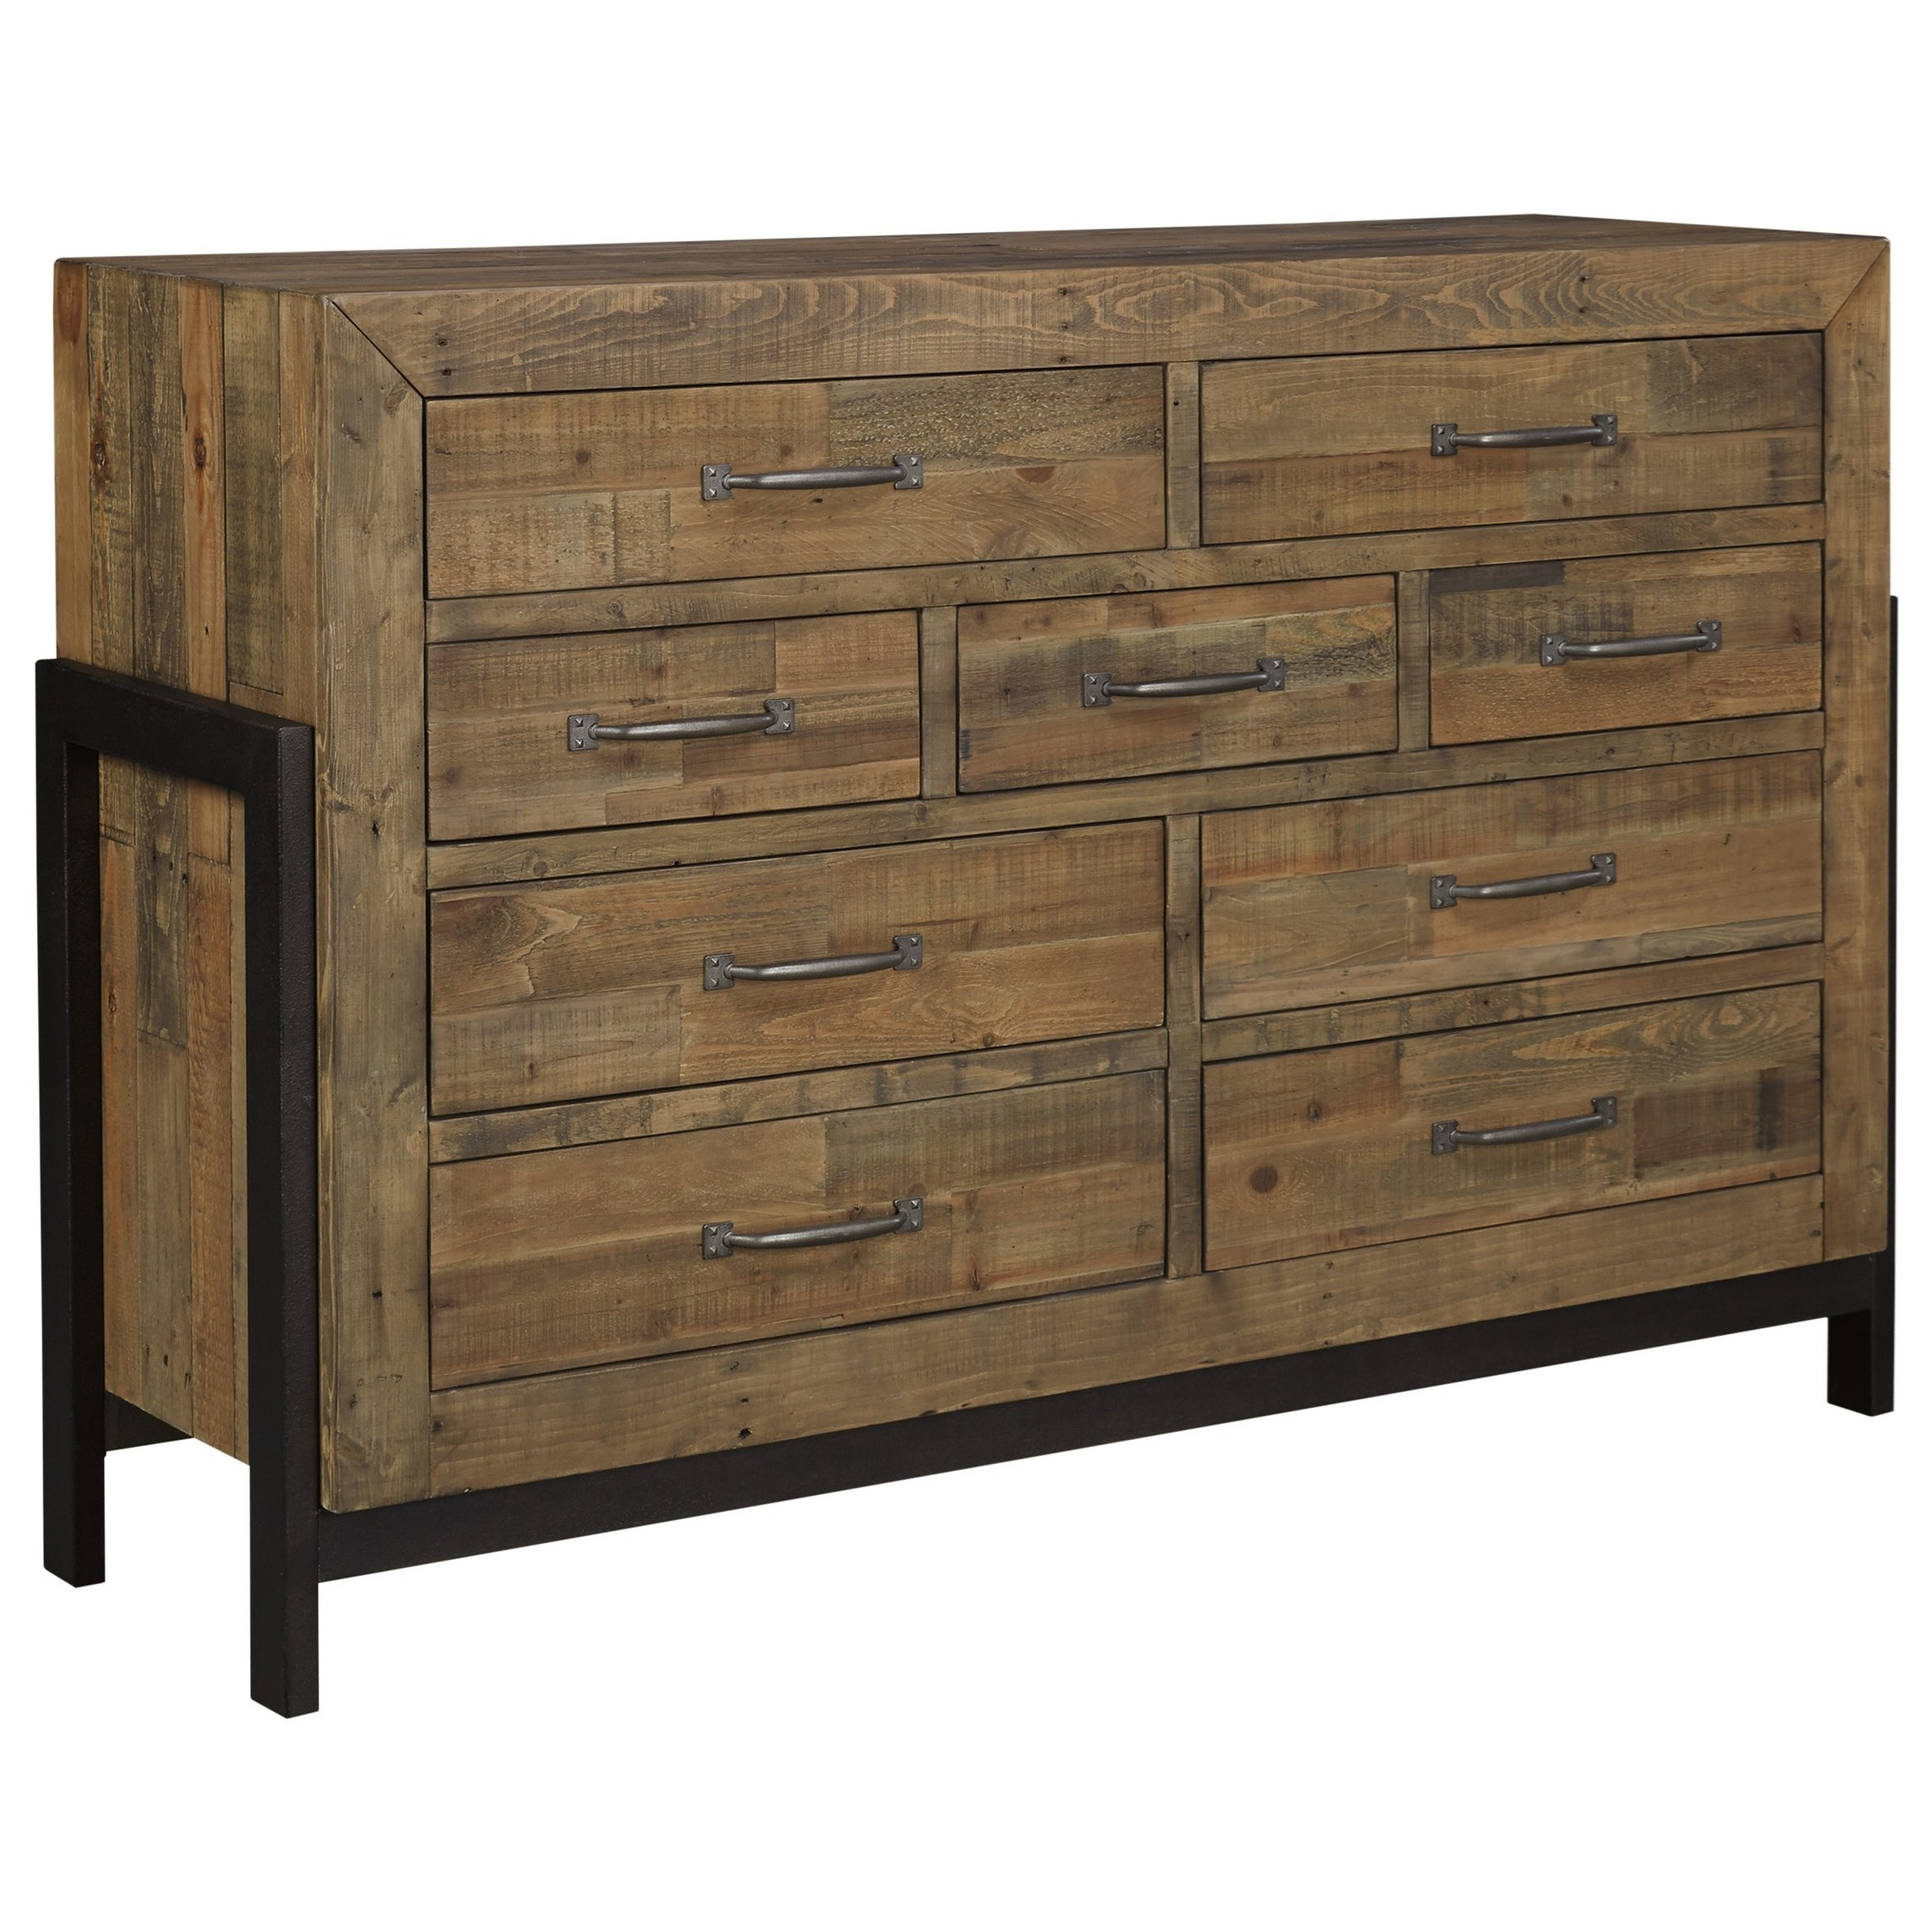 Signature Design by Ashley Sommerford Reclaimed Pine Solid Wood